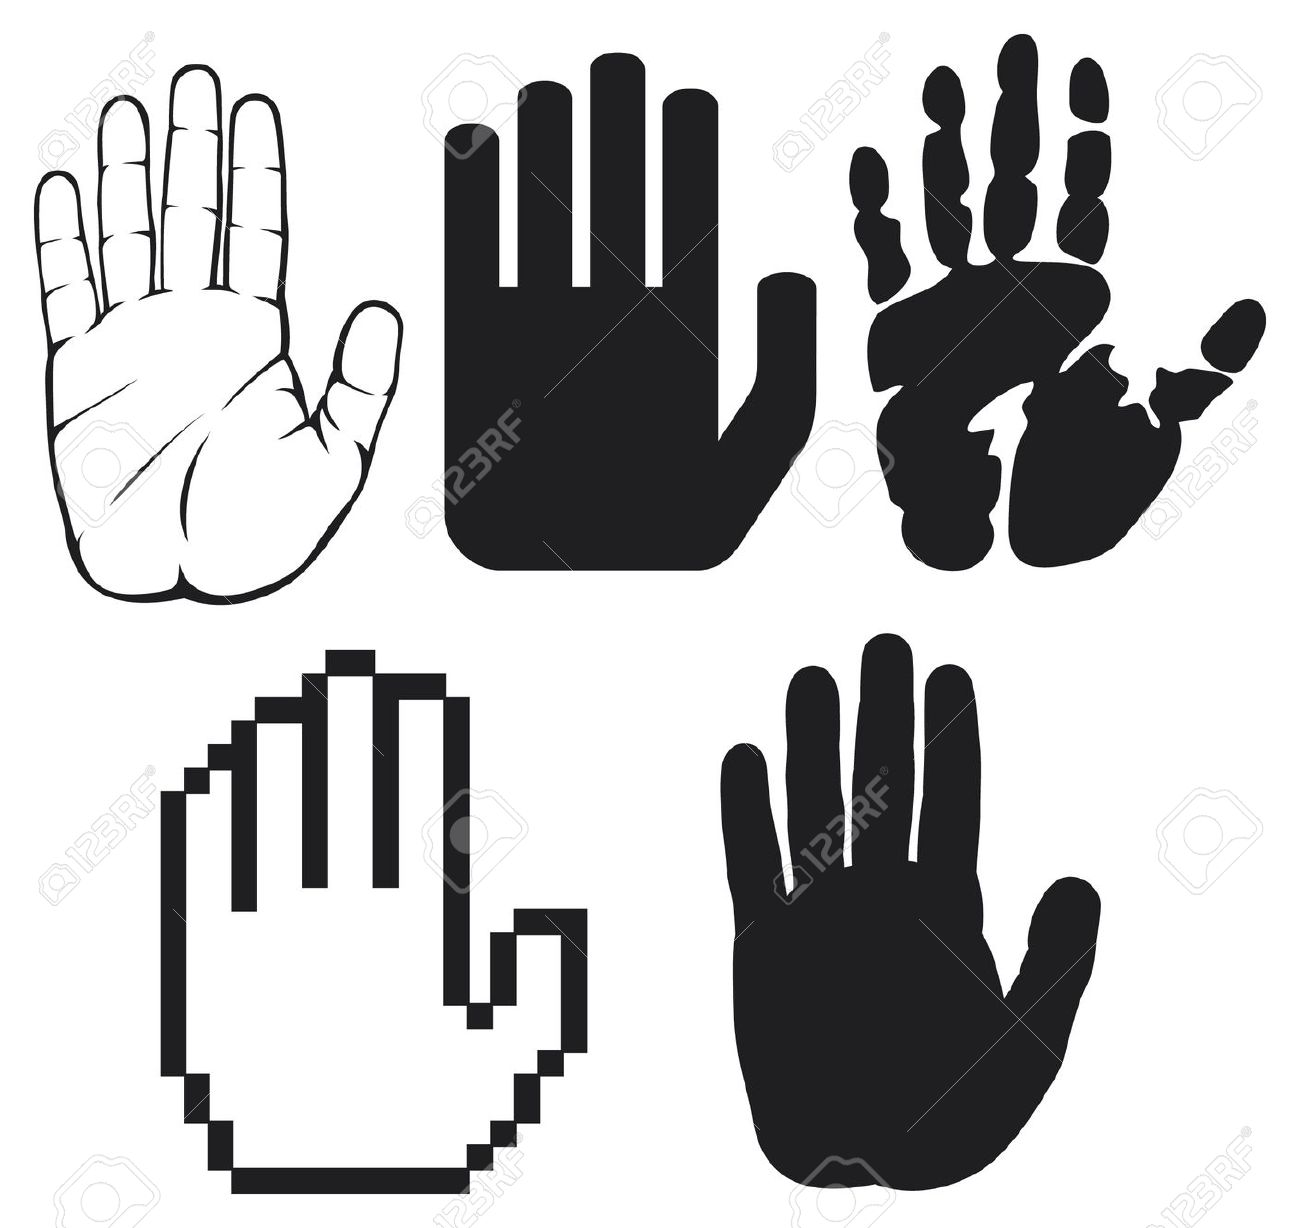 Stop Hand Silhouette Clipart.